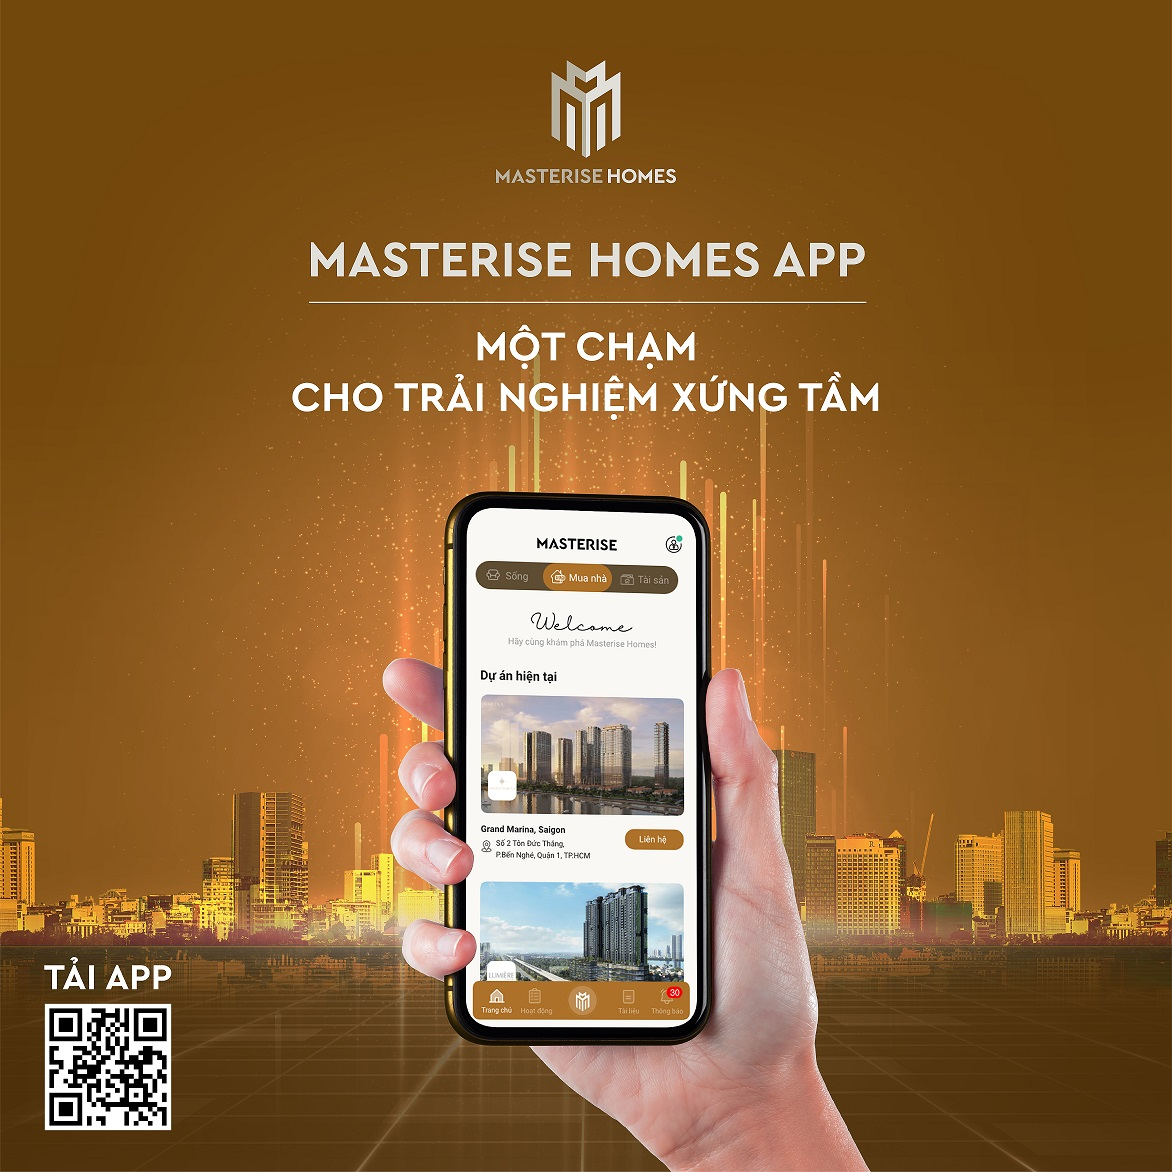 Masterise Homes launches a smart app that changes the way purchasers buy their new homes.